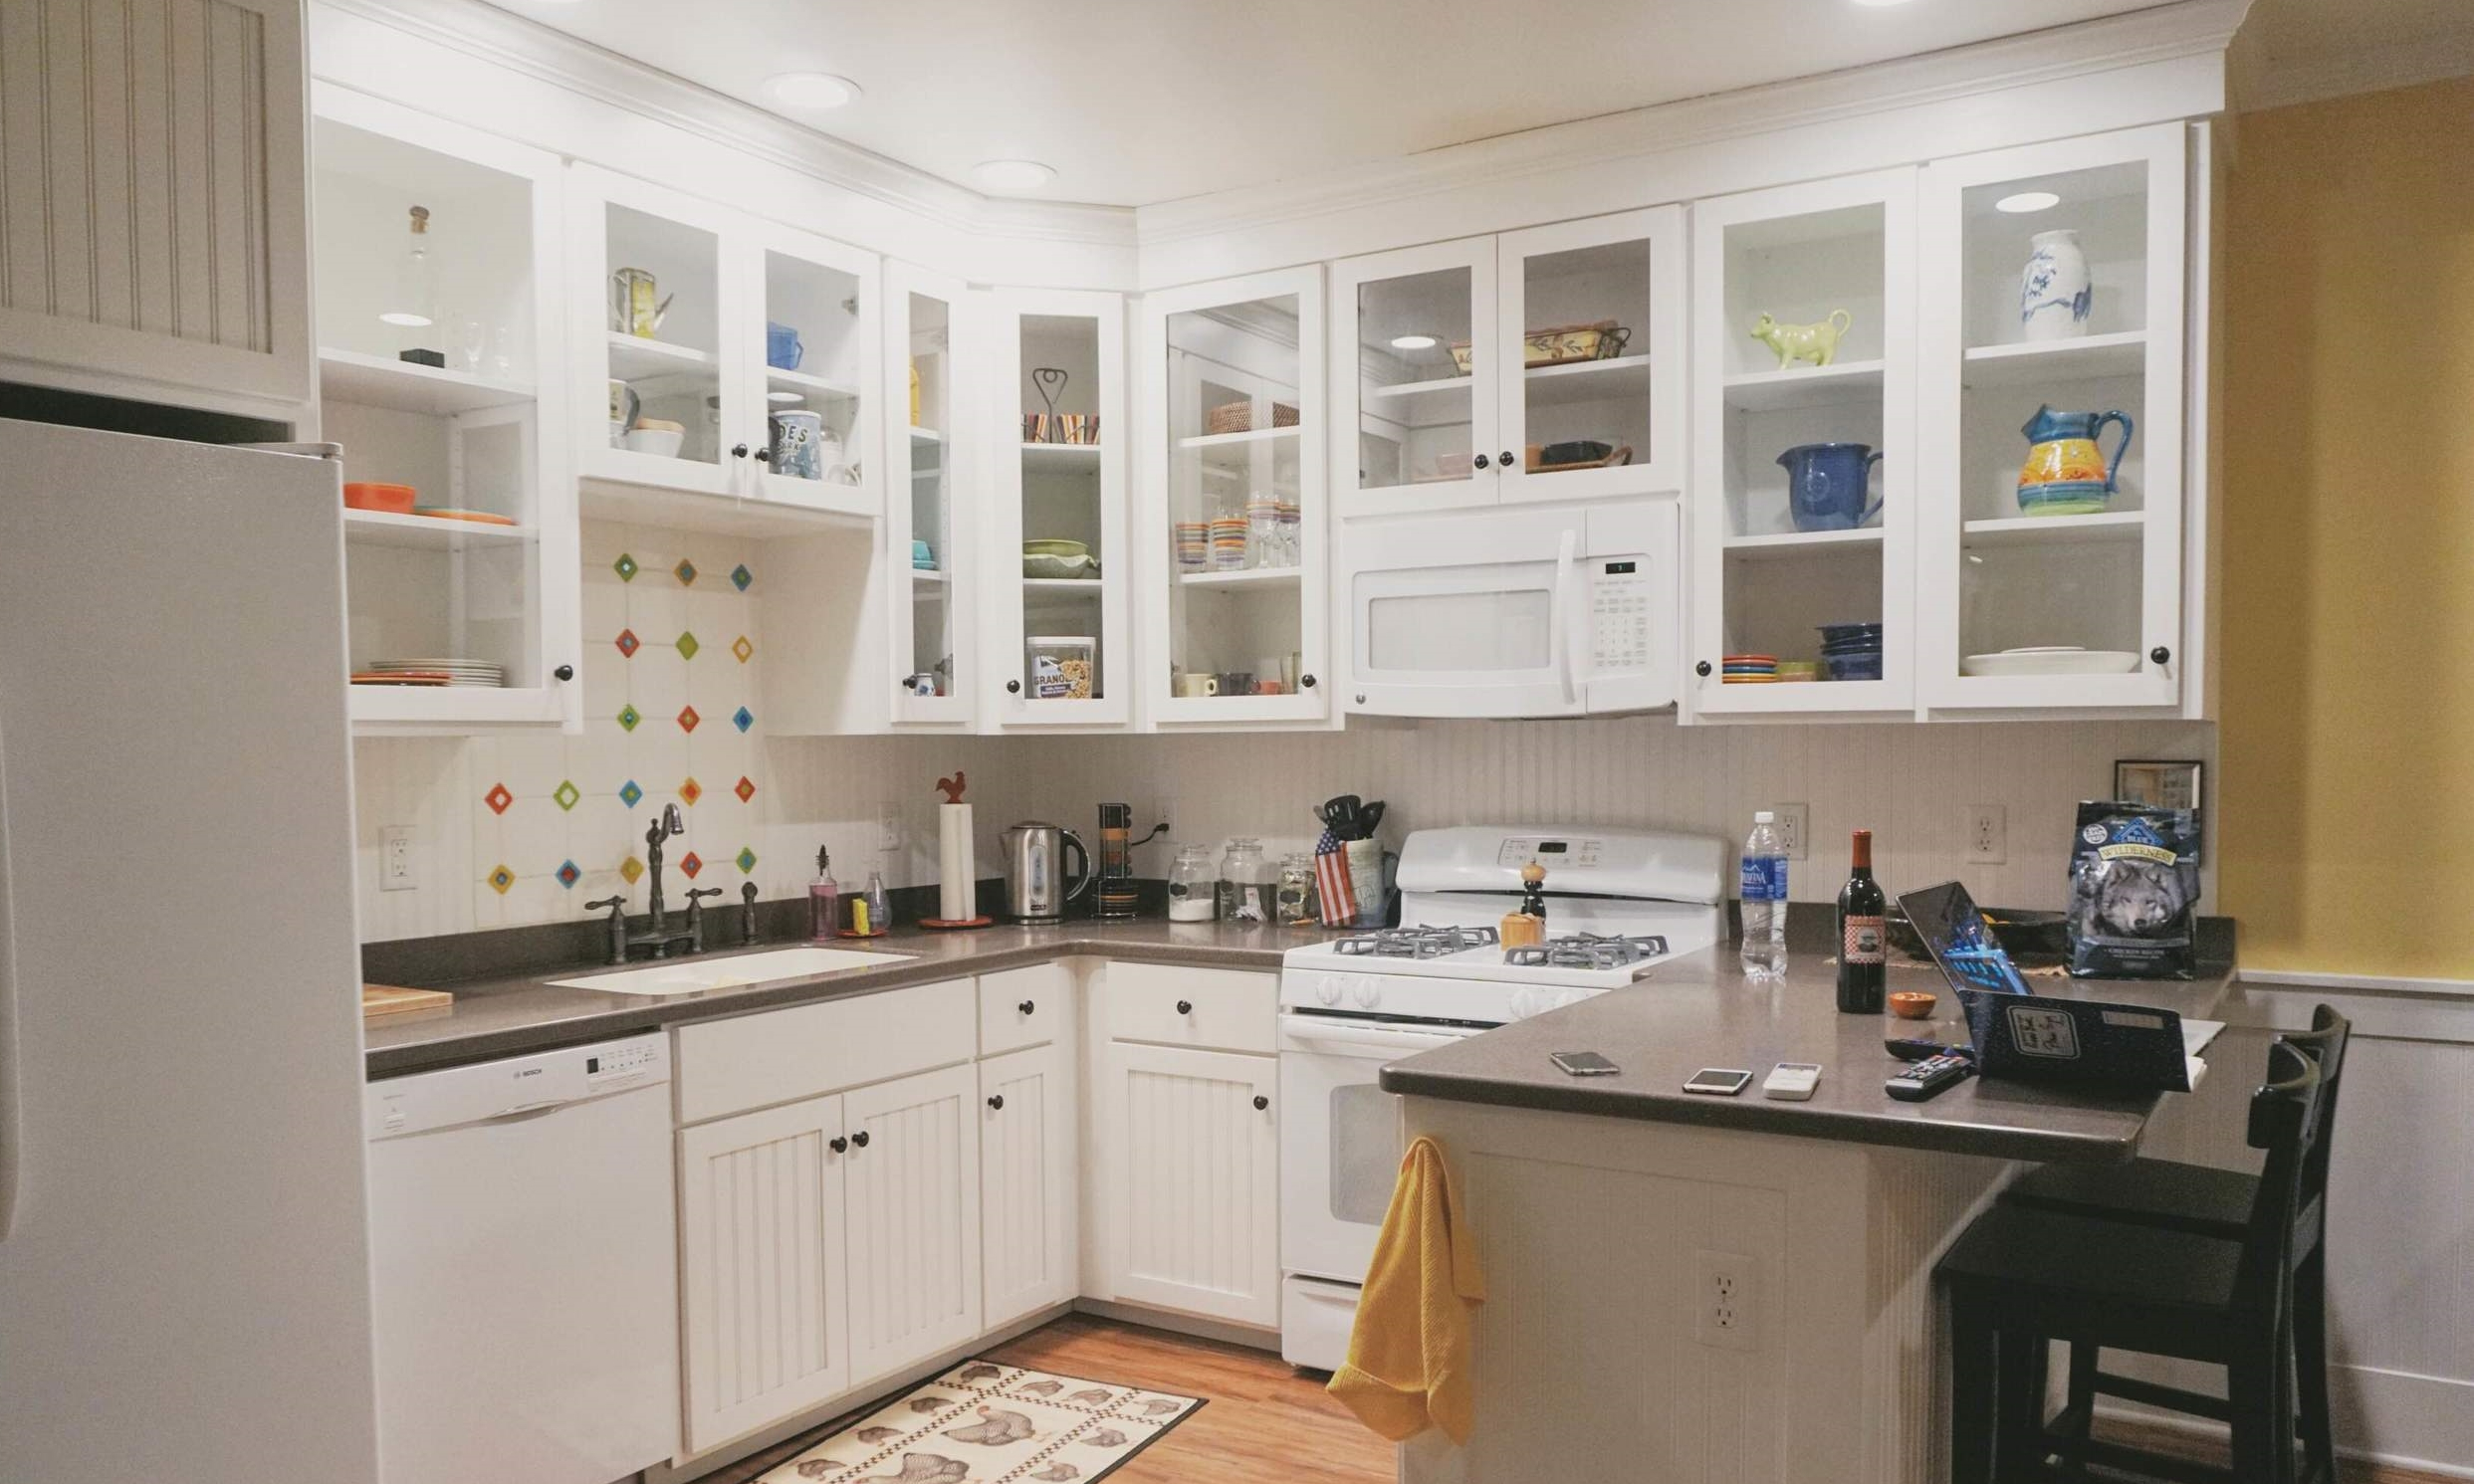 The kitchen was clean and fully equipped! *heart eyes*